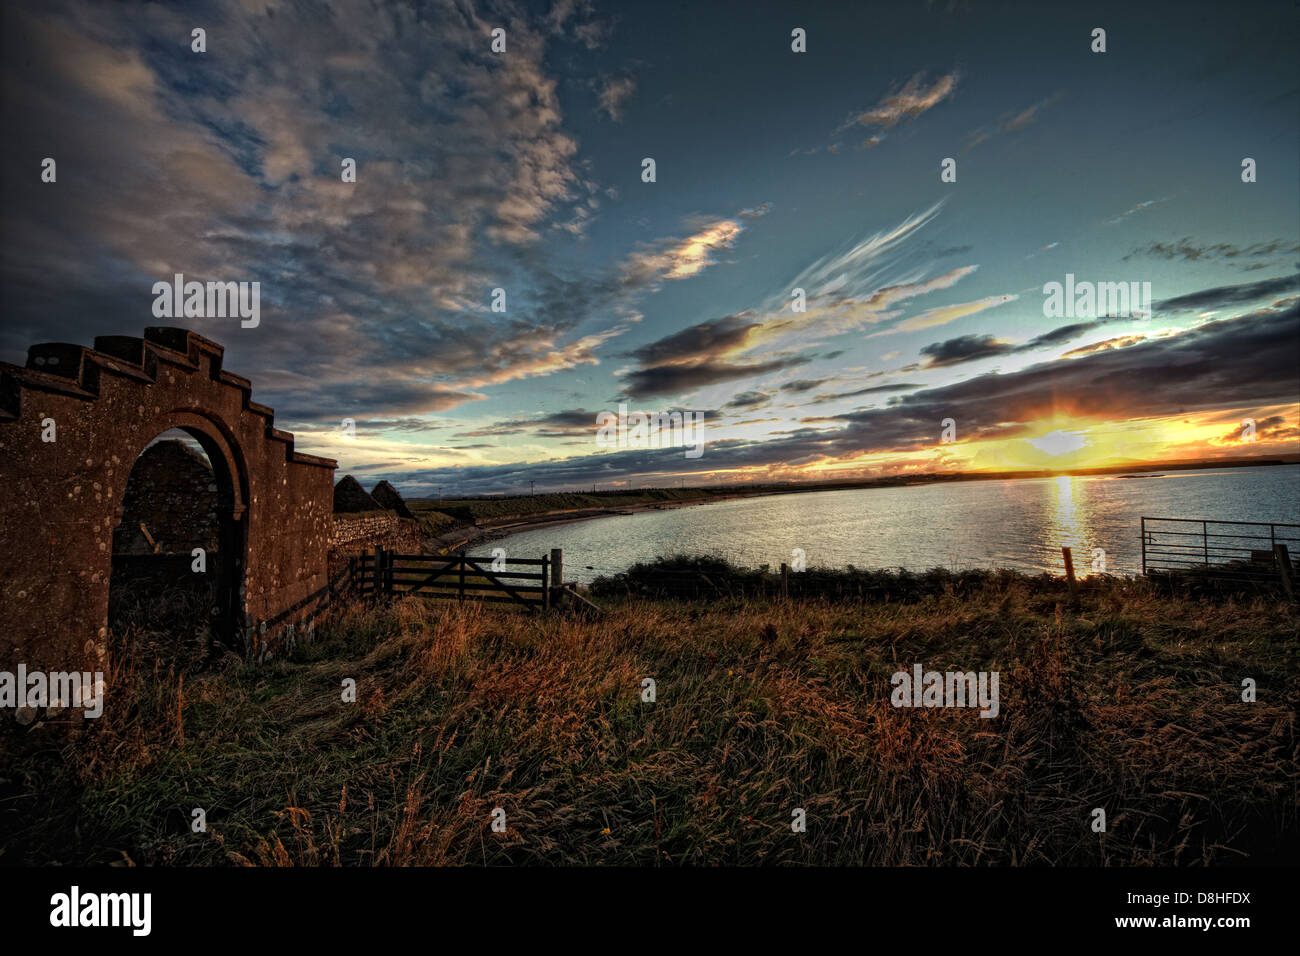 Sunset at the Ruins of St Columbas Church, Aignish, outside Stornoway Isle Of Lewis, Scotland - Stock Image